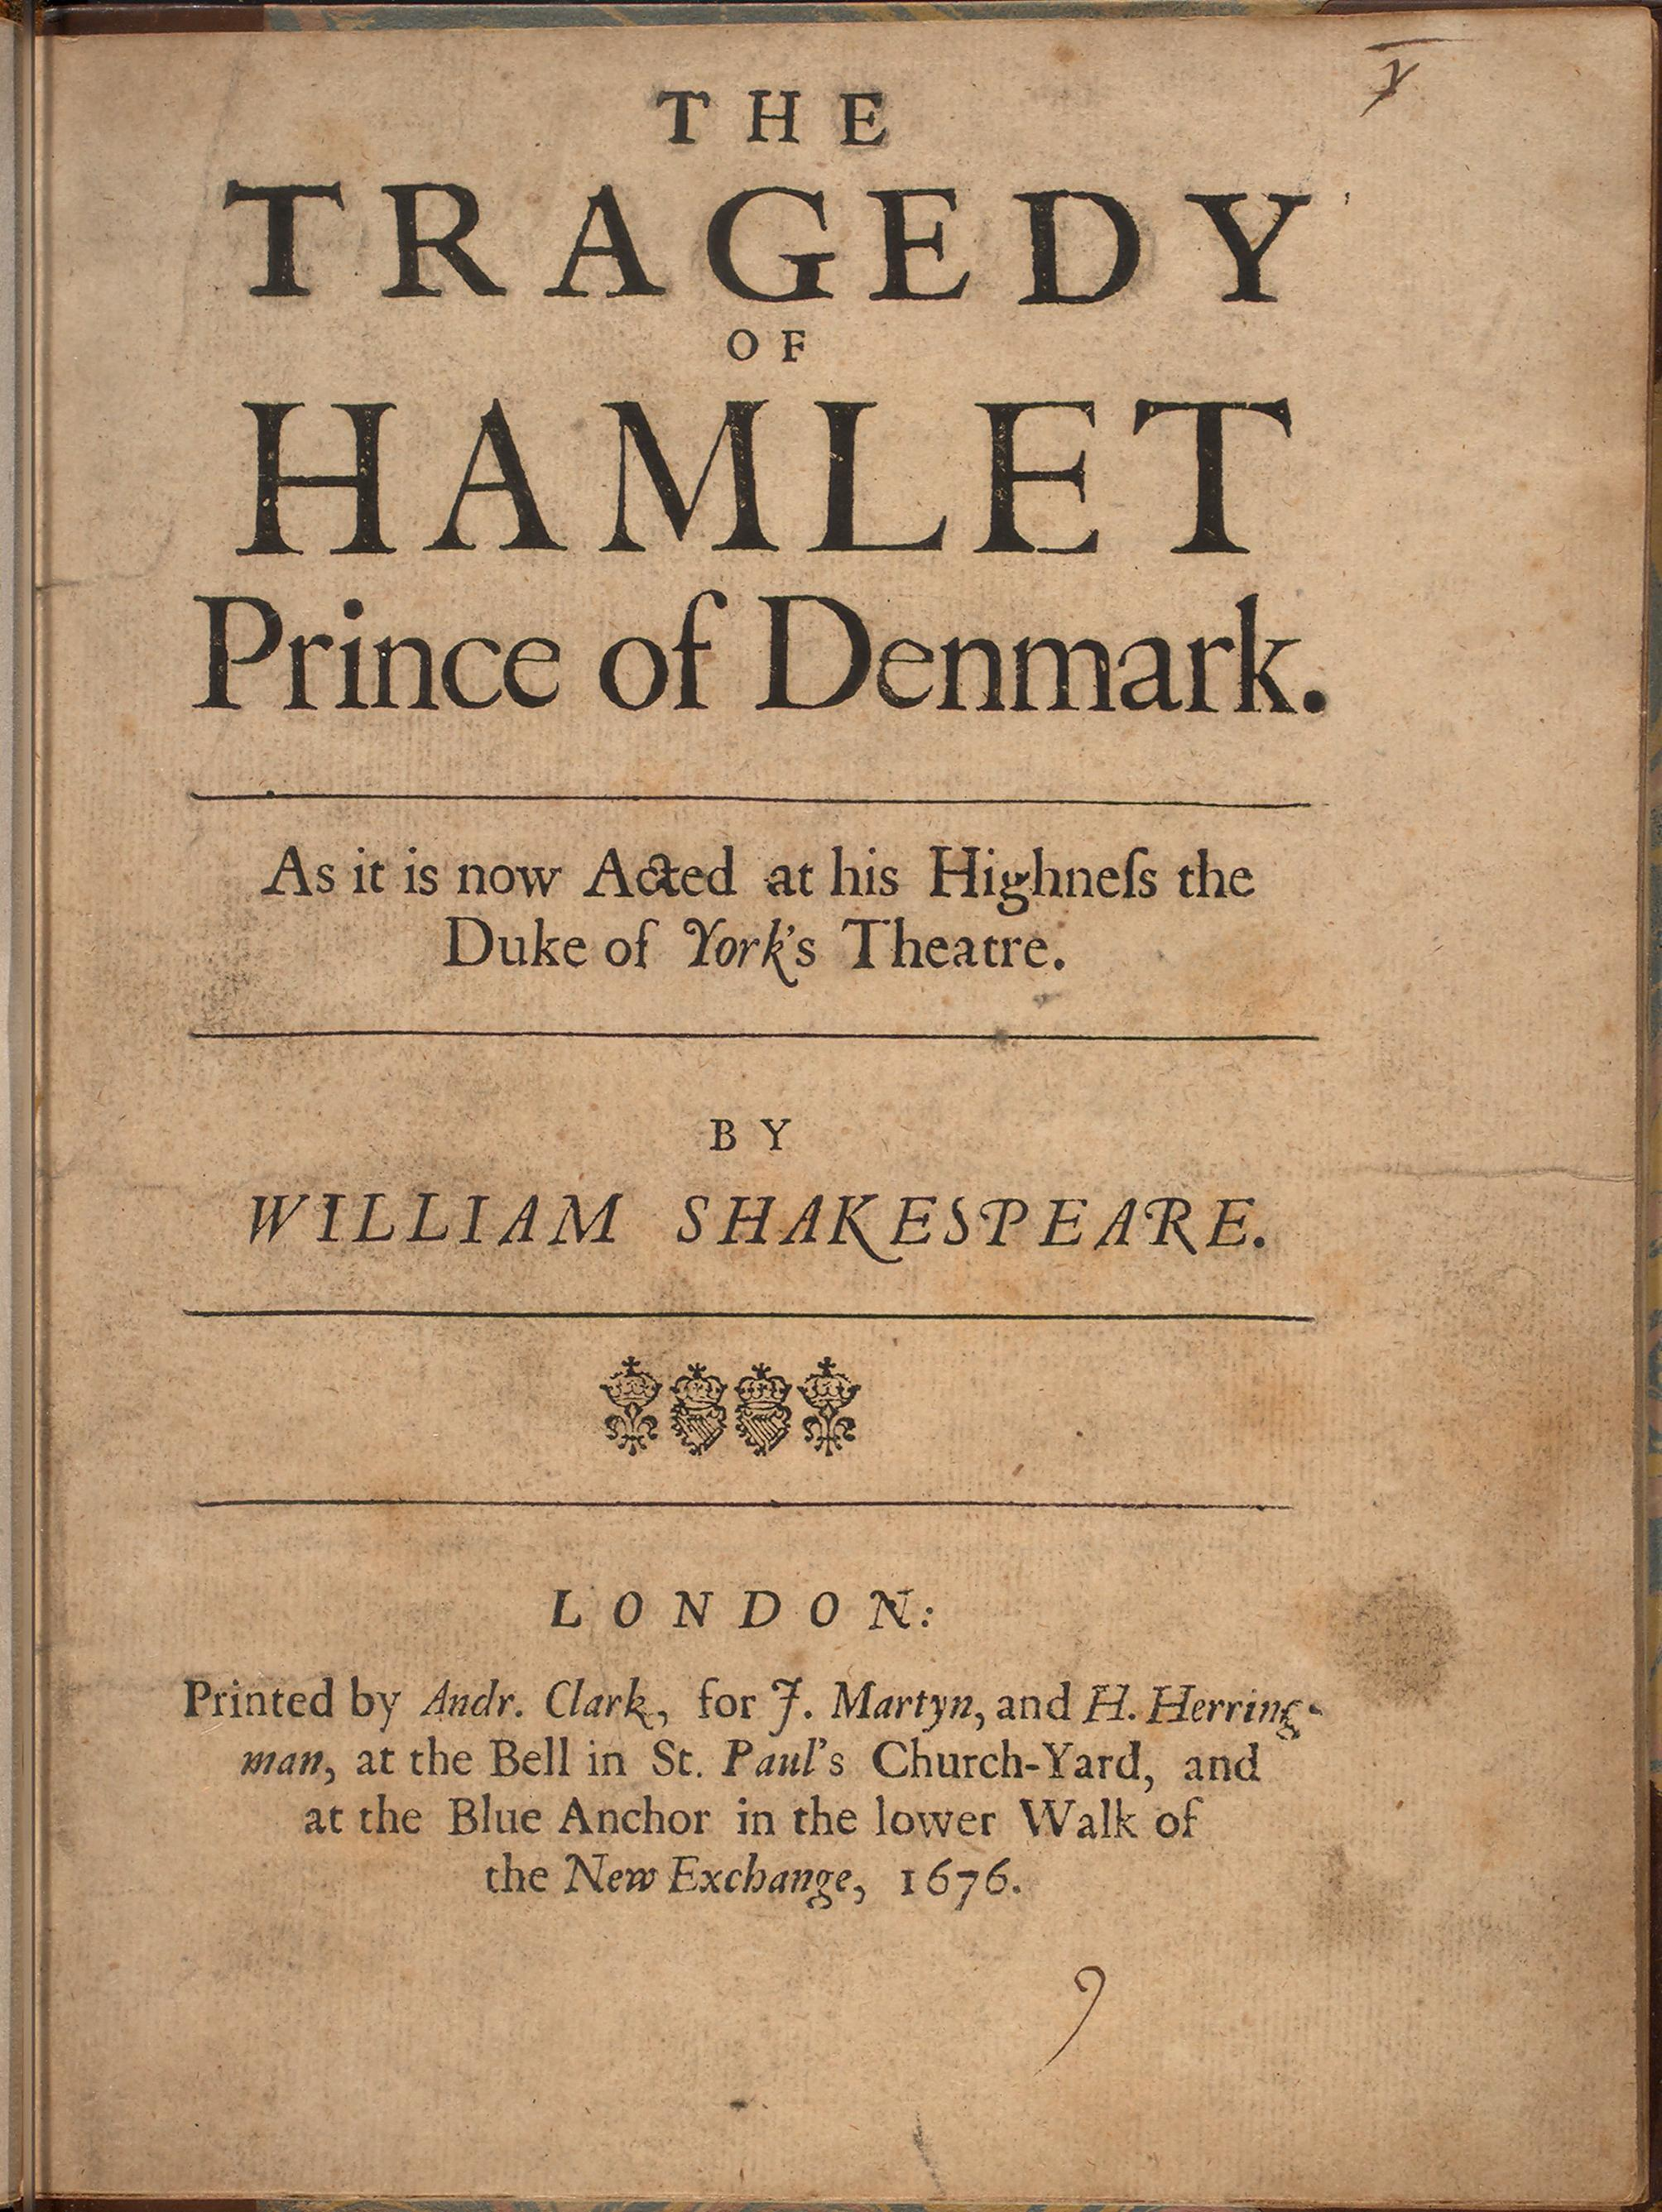 the catalyst for hamlet's tragedy is Features of shakespearean comedies and tragedies transcript of features of shakespearean comedies and comedy and tragedy in the first period he wrote his.